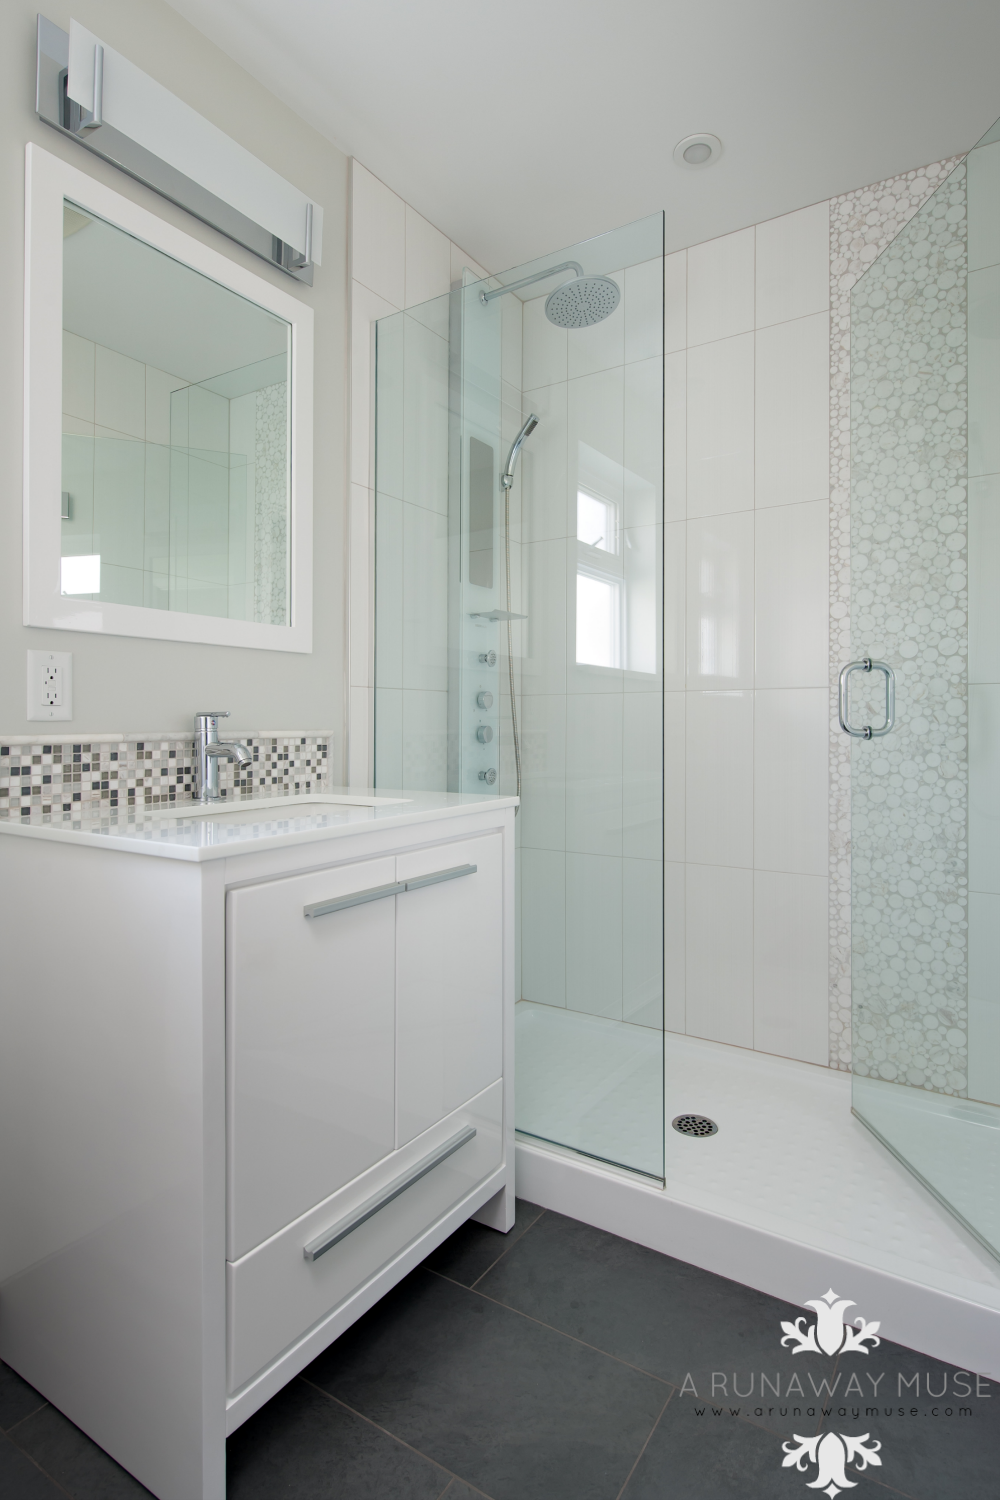 Before And After: 70u0027s Split Level Renovation: Basement Bathroom #interior  #reno